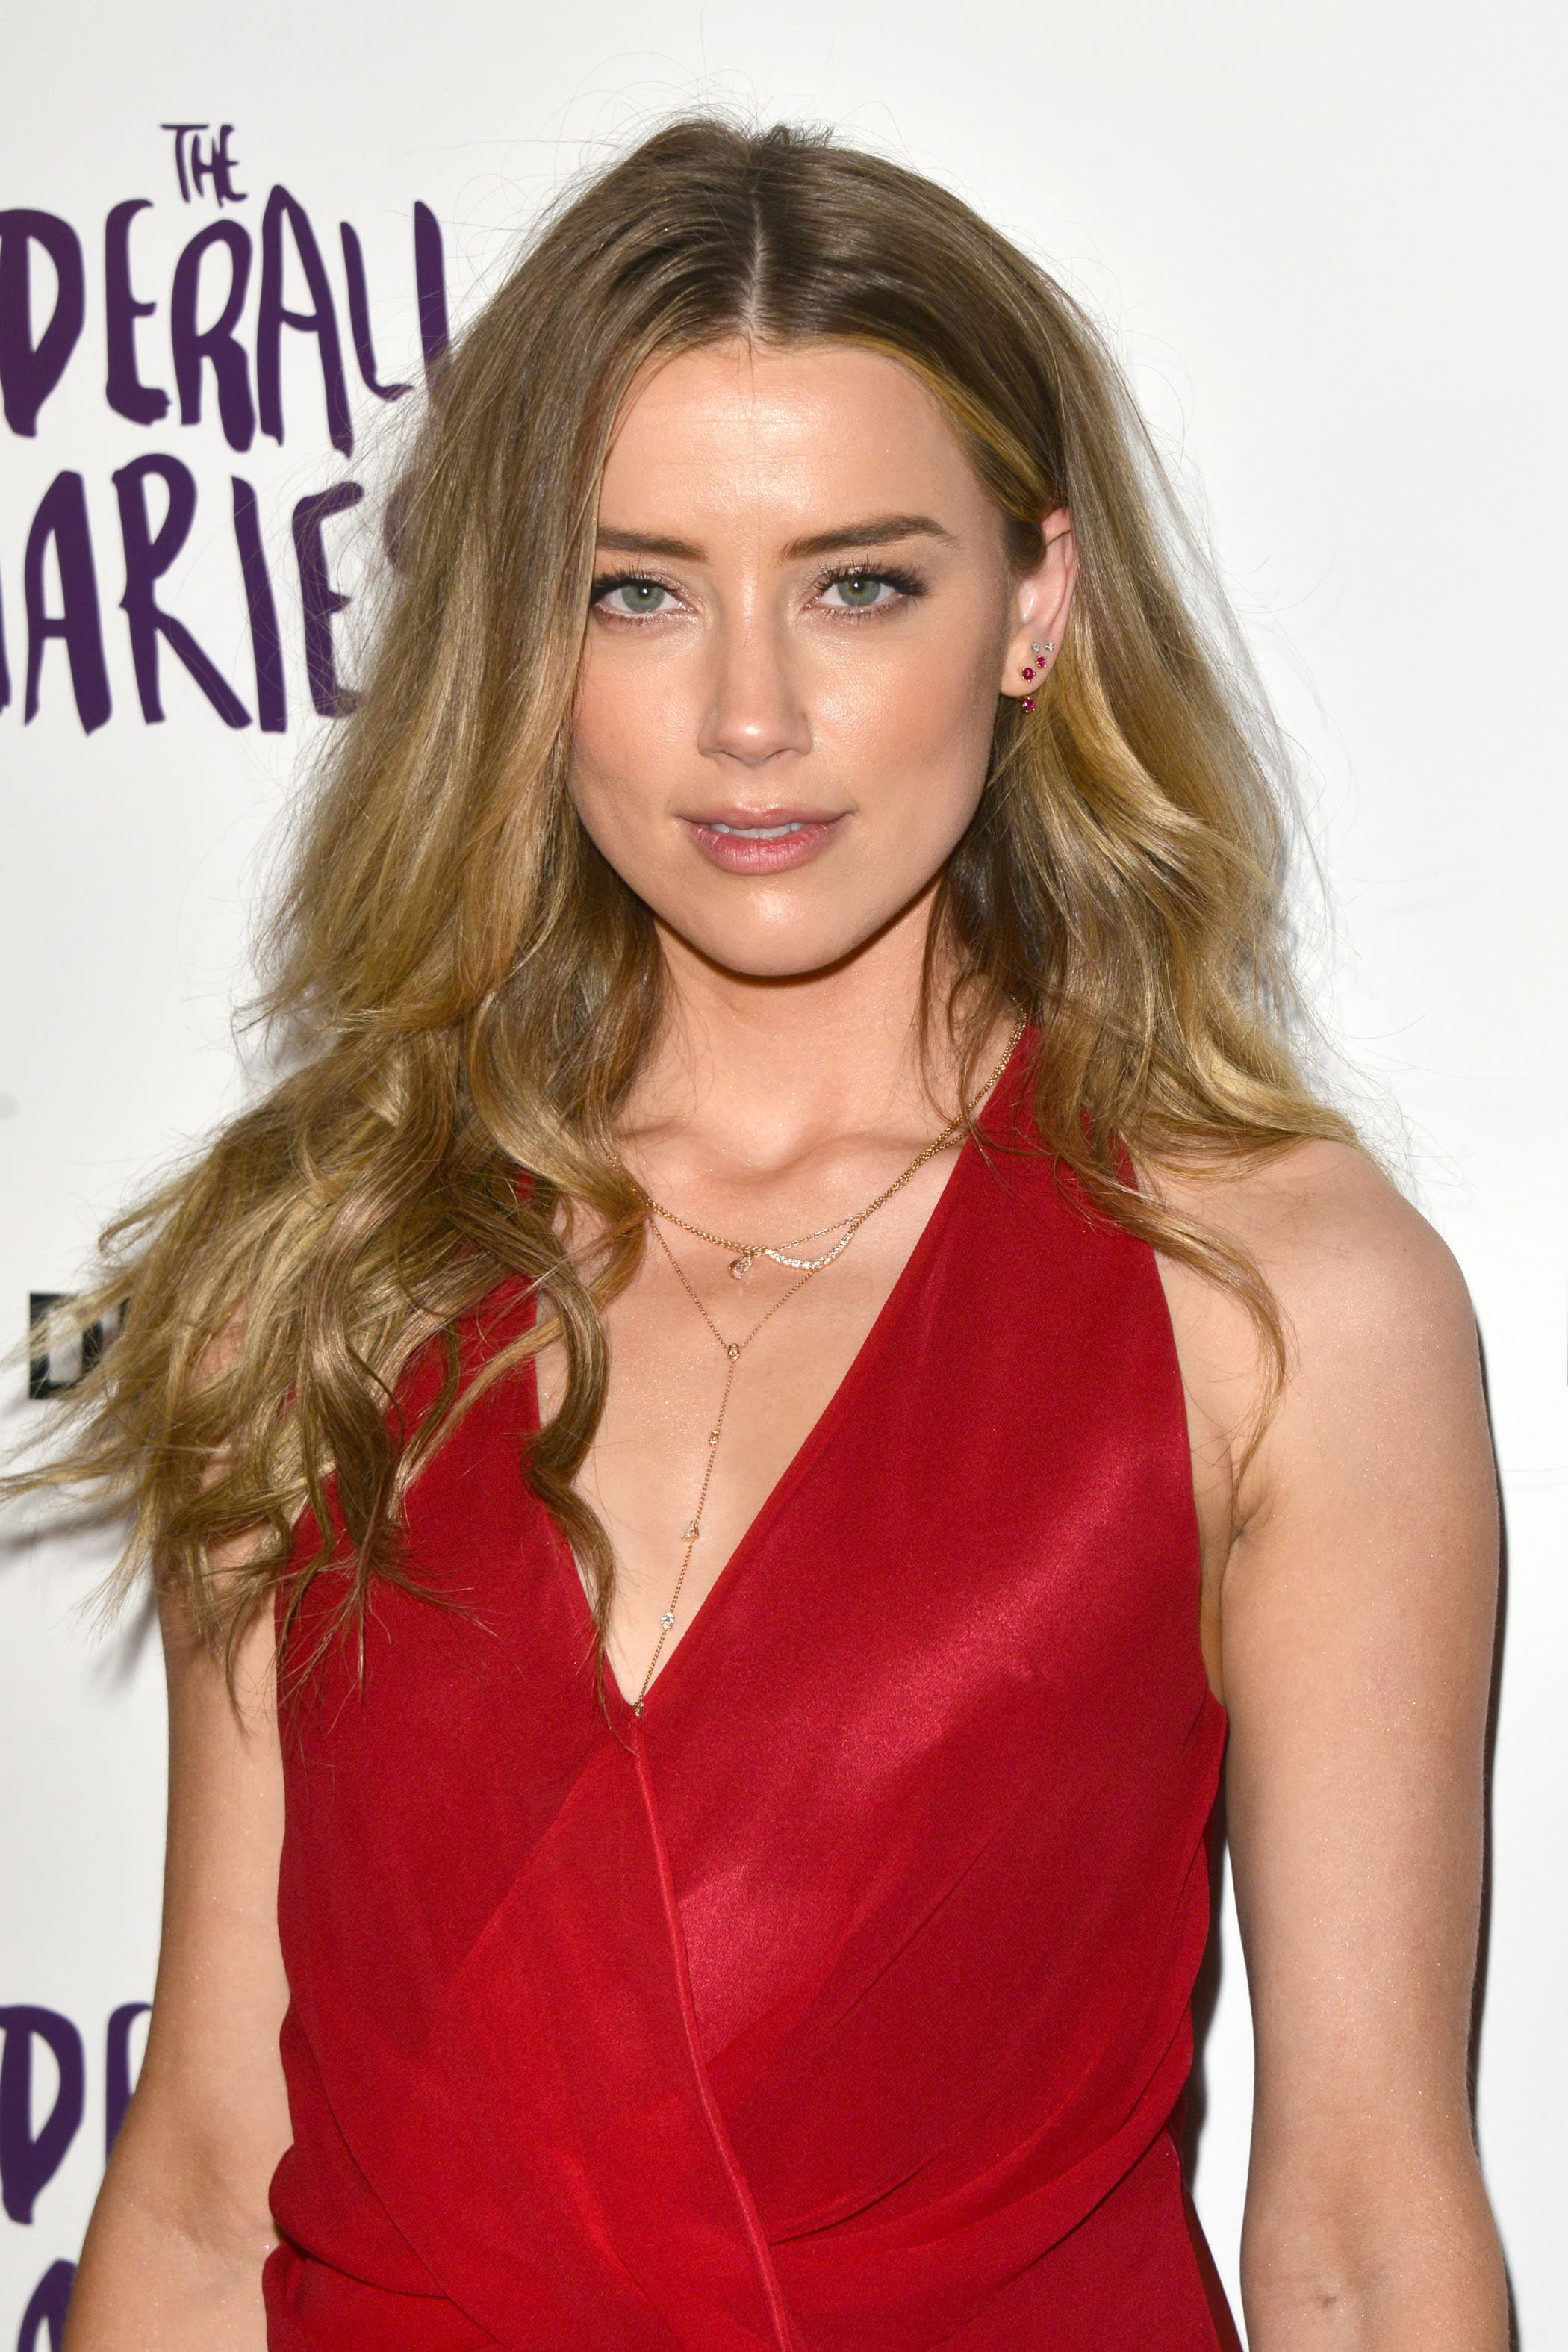 Amber Heard - long loose waves dirty blonde hair worn to the side